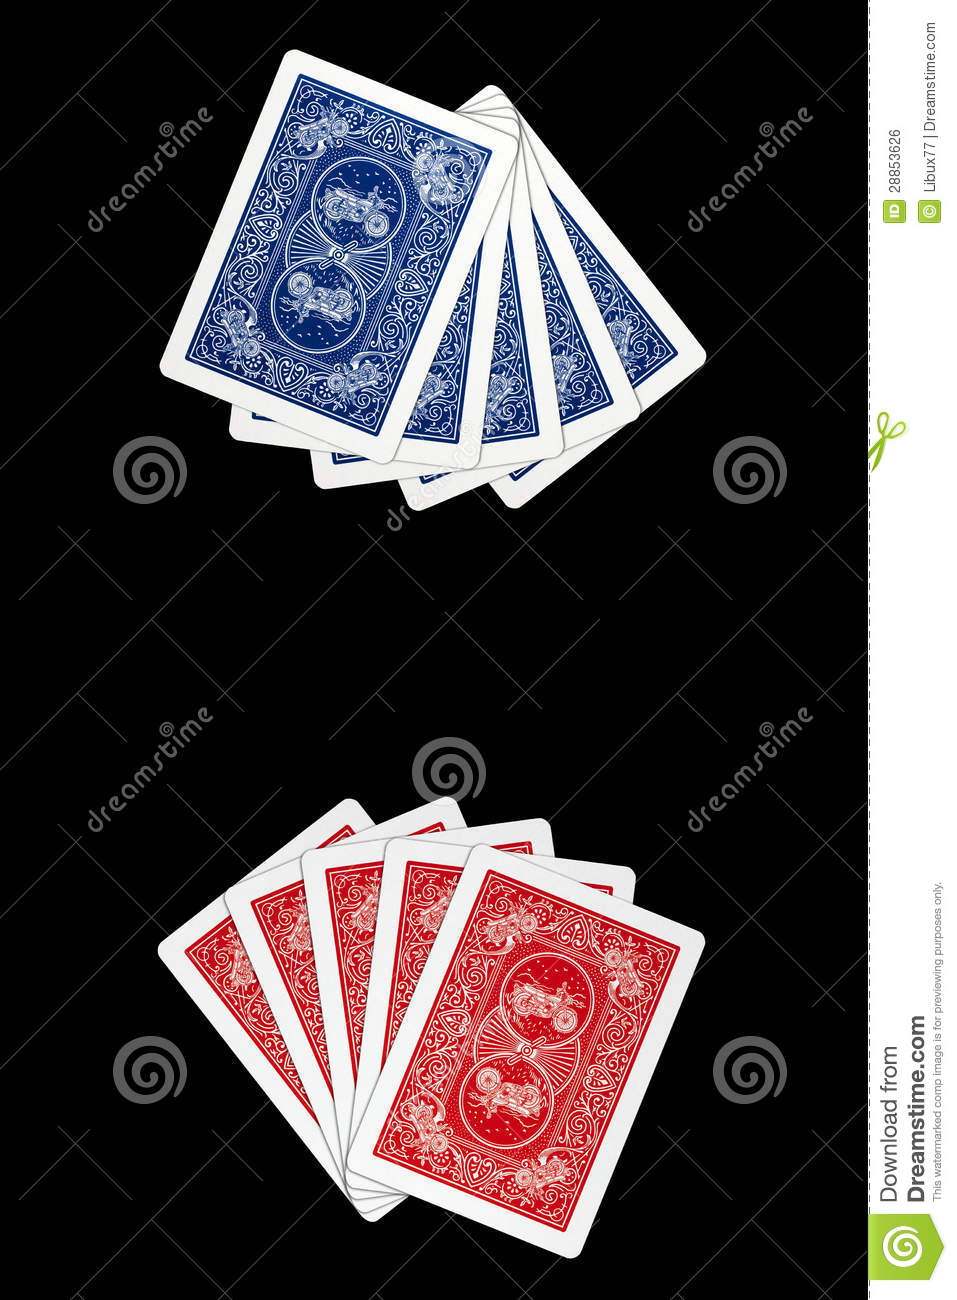 Playing Cards - Face Down Cards Royalty Free Stock Image ...